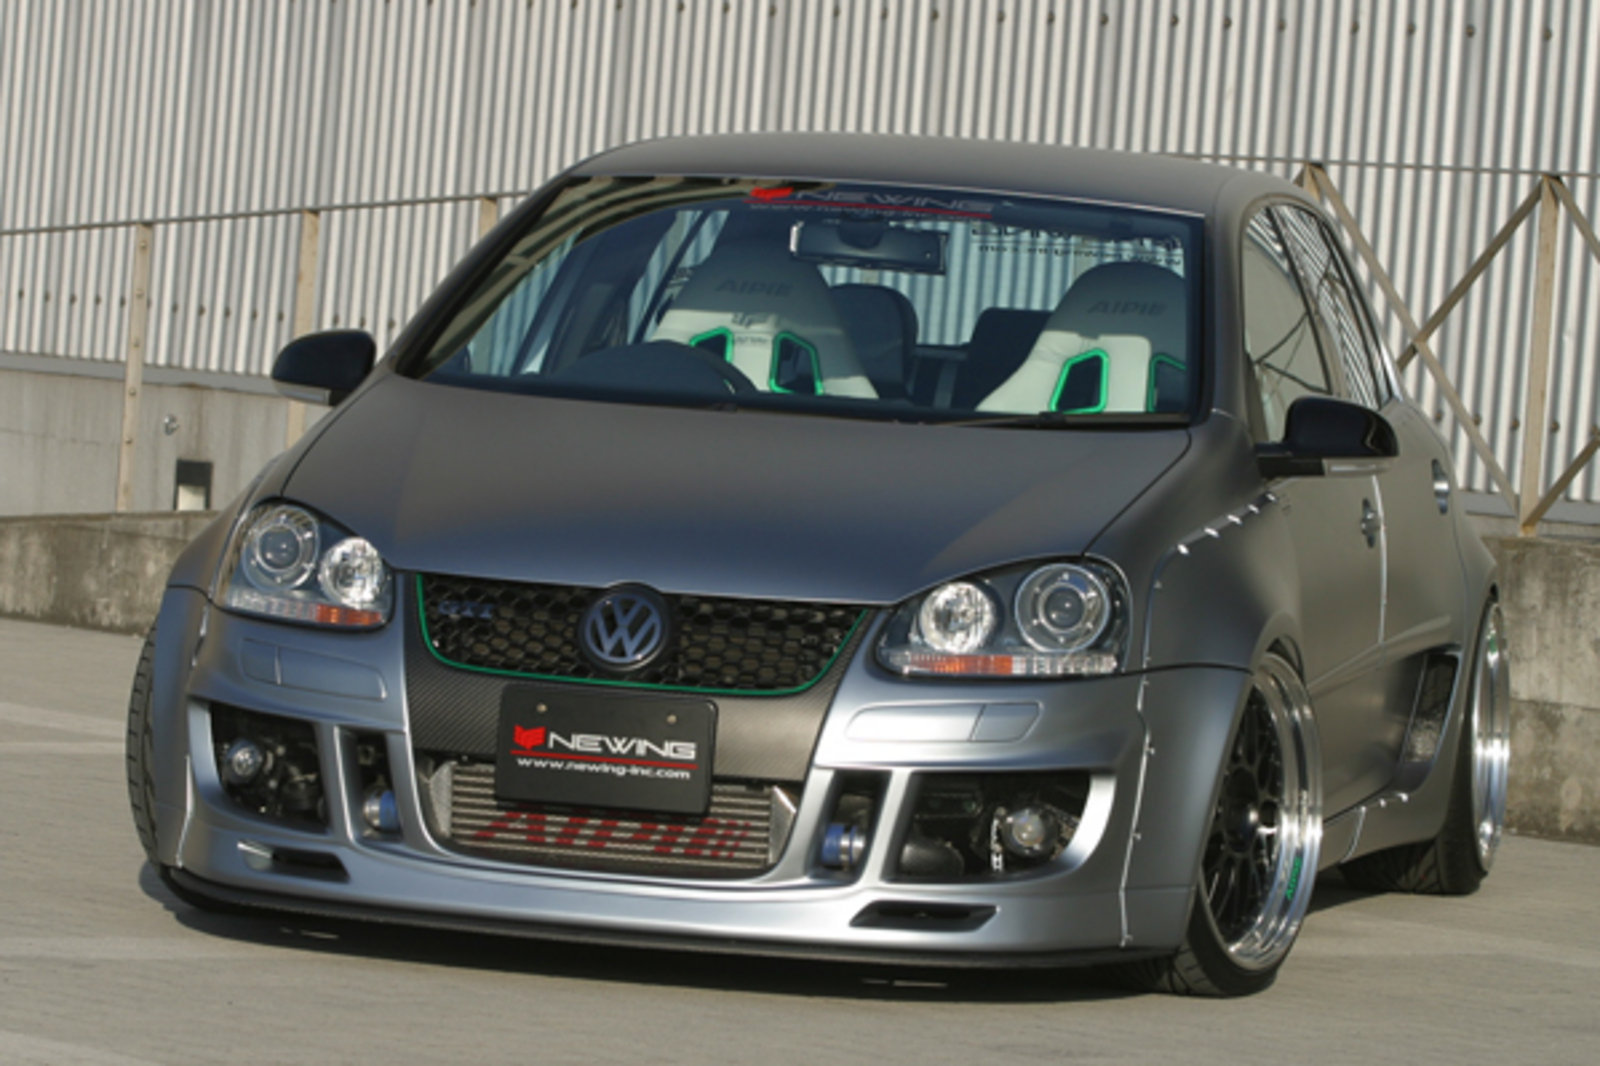 Vw Golf Gti Rsr By Newing Tuning News Top Speed